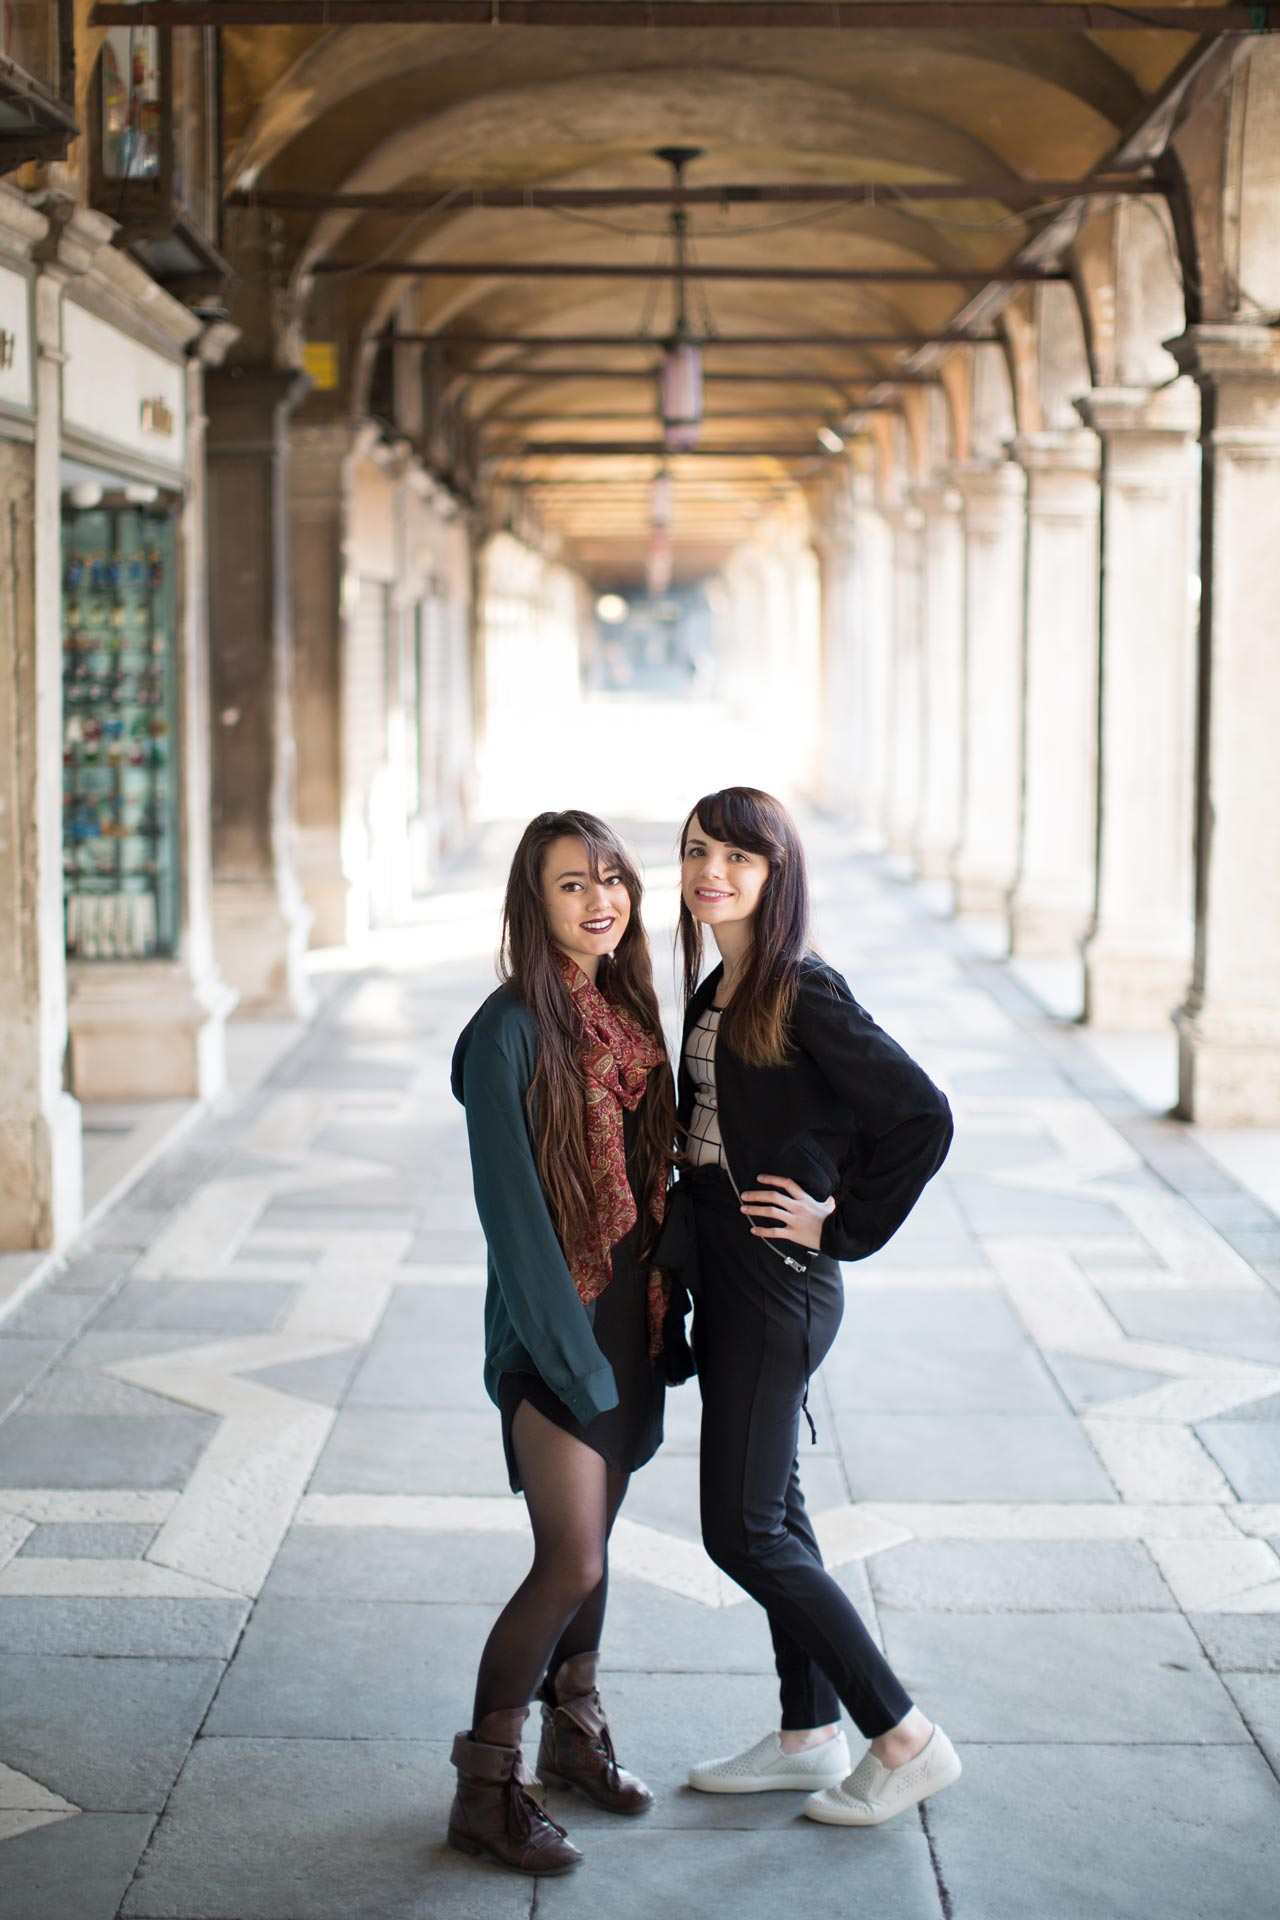 Ashley-Meagan-portrait-photo-shooting-sunrise-piazza-san-marco-Venezia-Venice